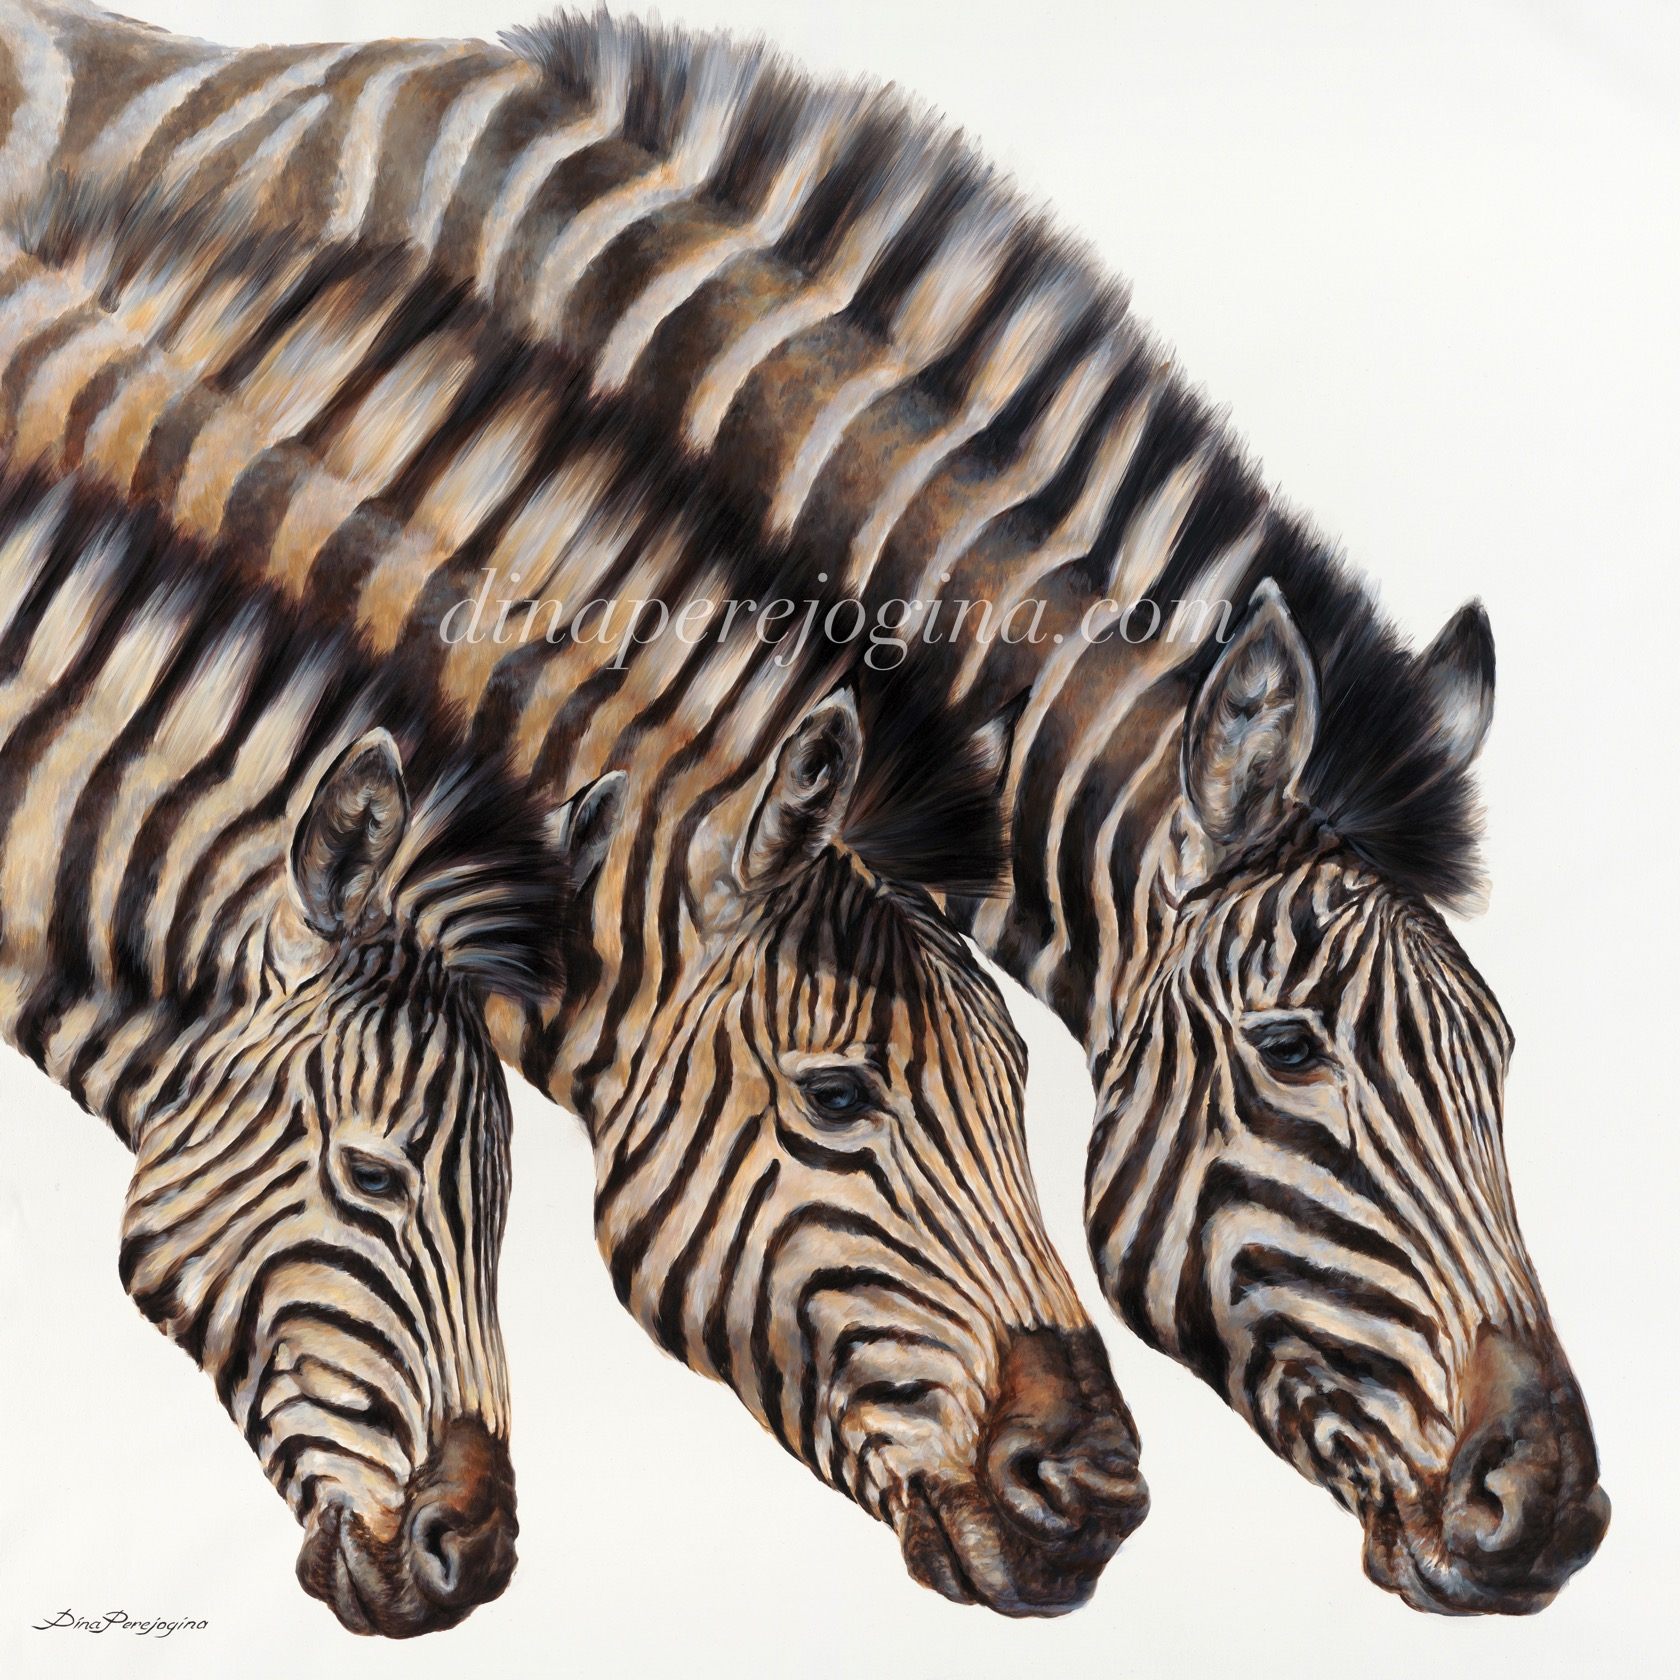 'Crossing Zebras'